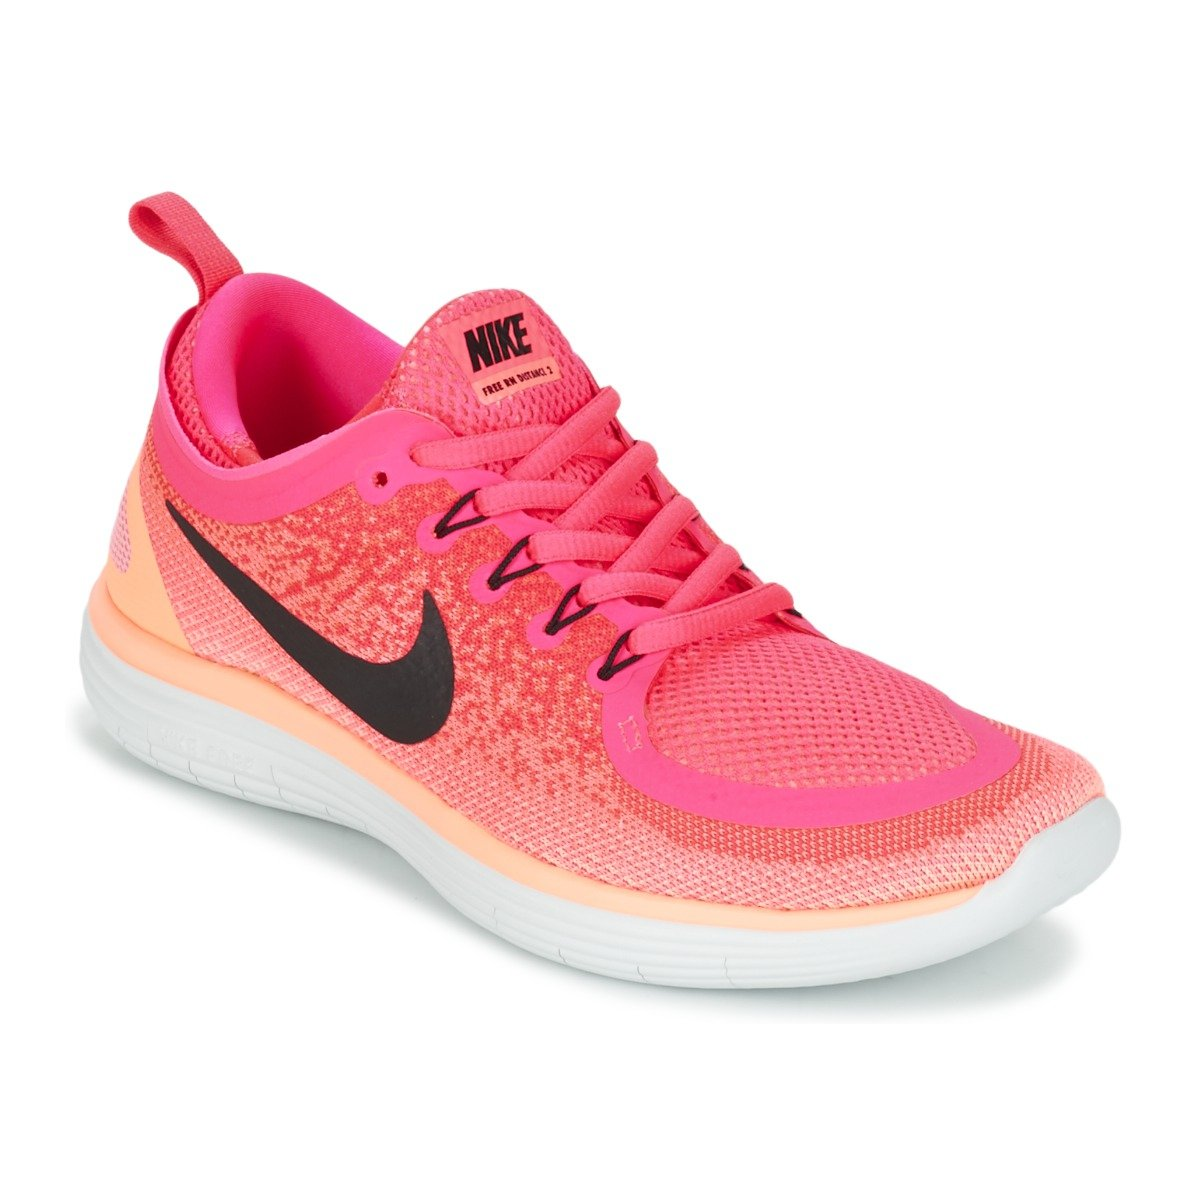 Nike Women's Free Rn Distance 2 Running Shoe B073NG2882 5 M US|Racer Pink/Black-lava Glow-hot Punch